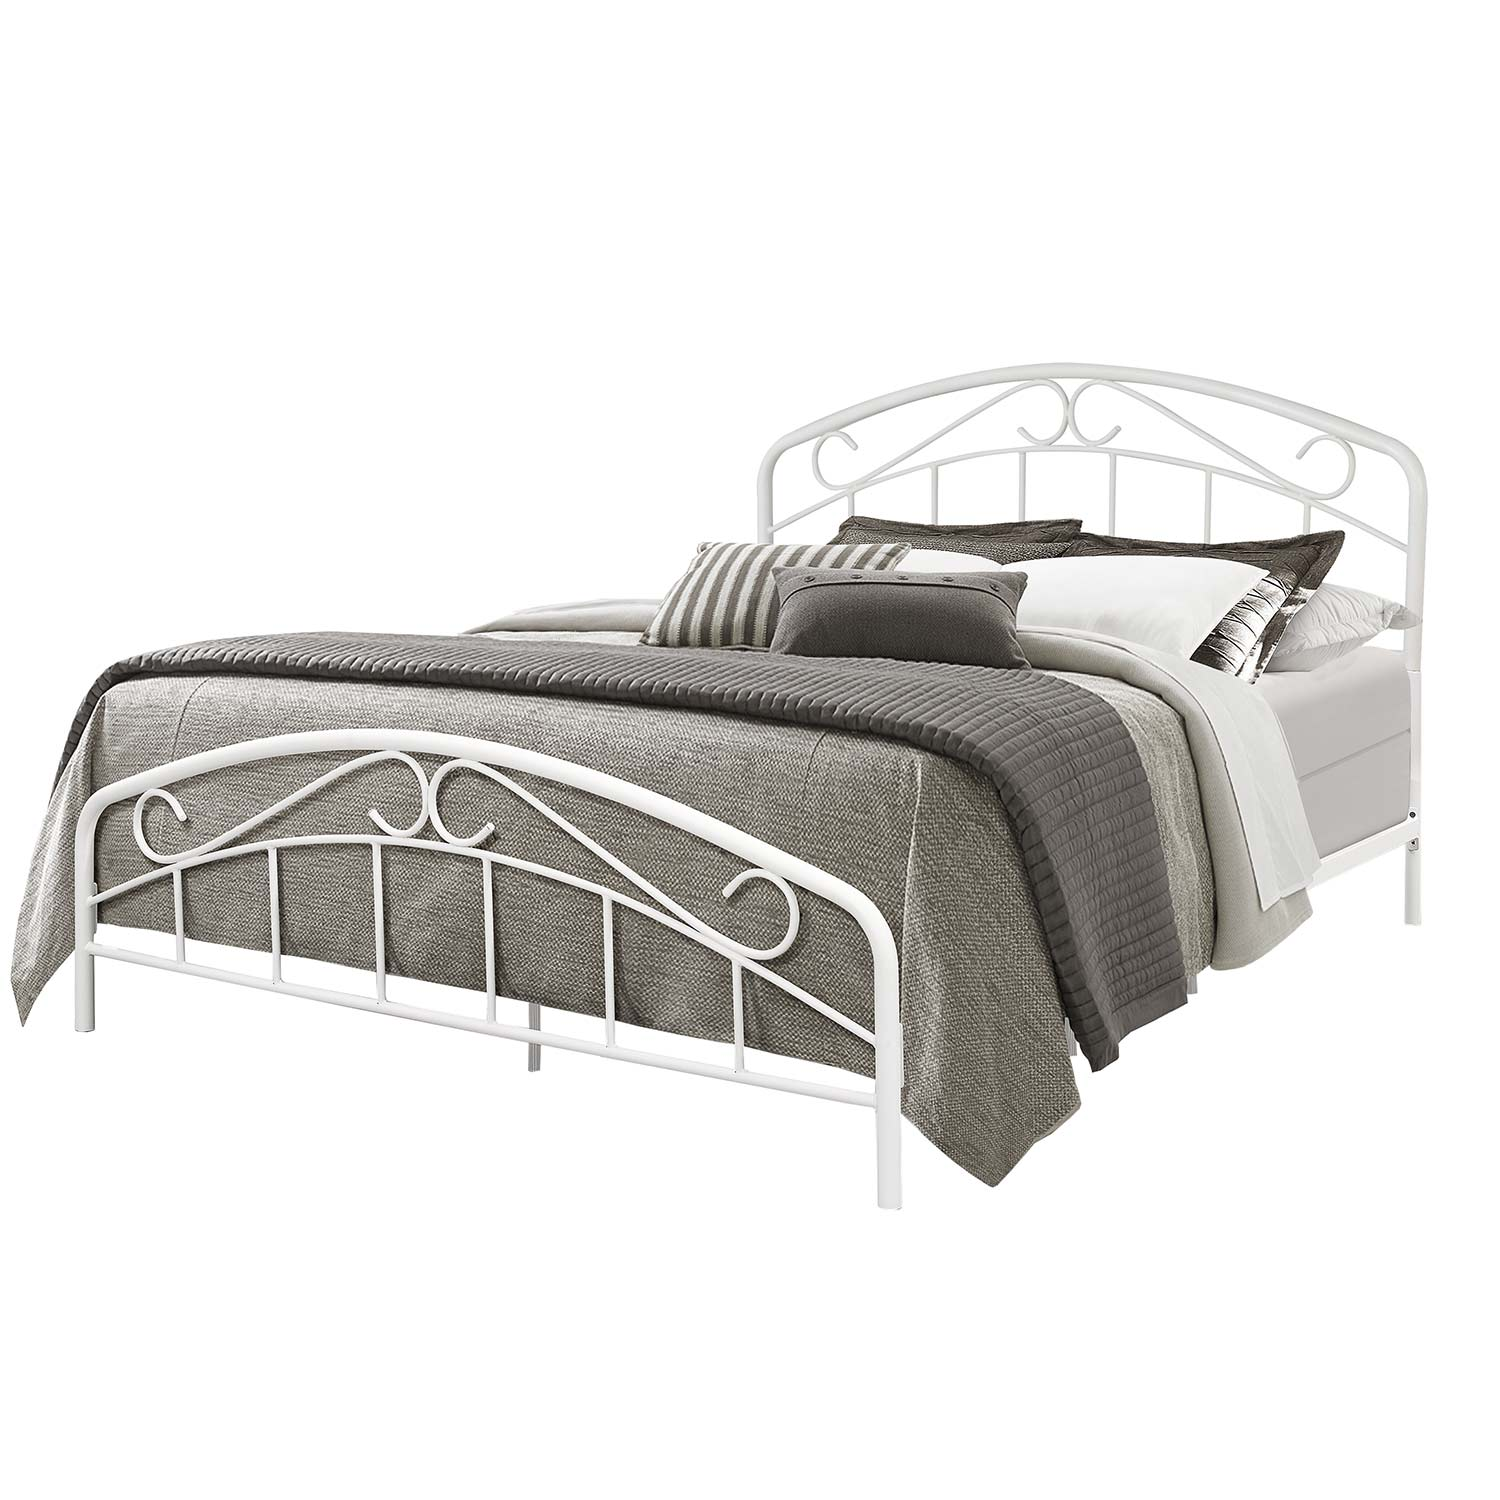 Hillsdale Jolie Metal Bed with Arched Scroll Design - Textured White